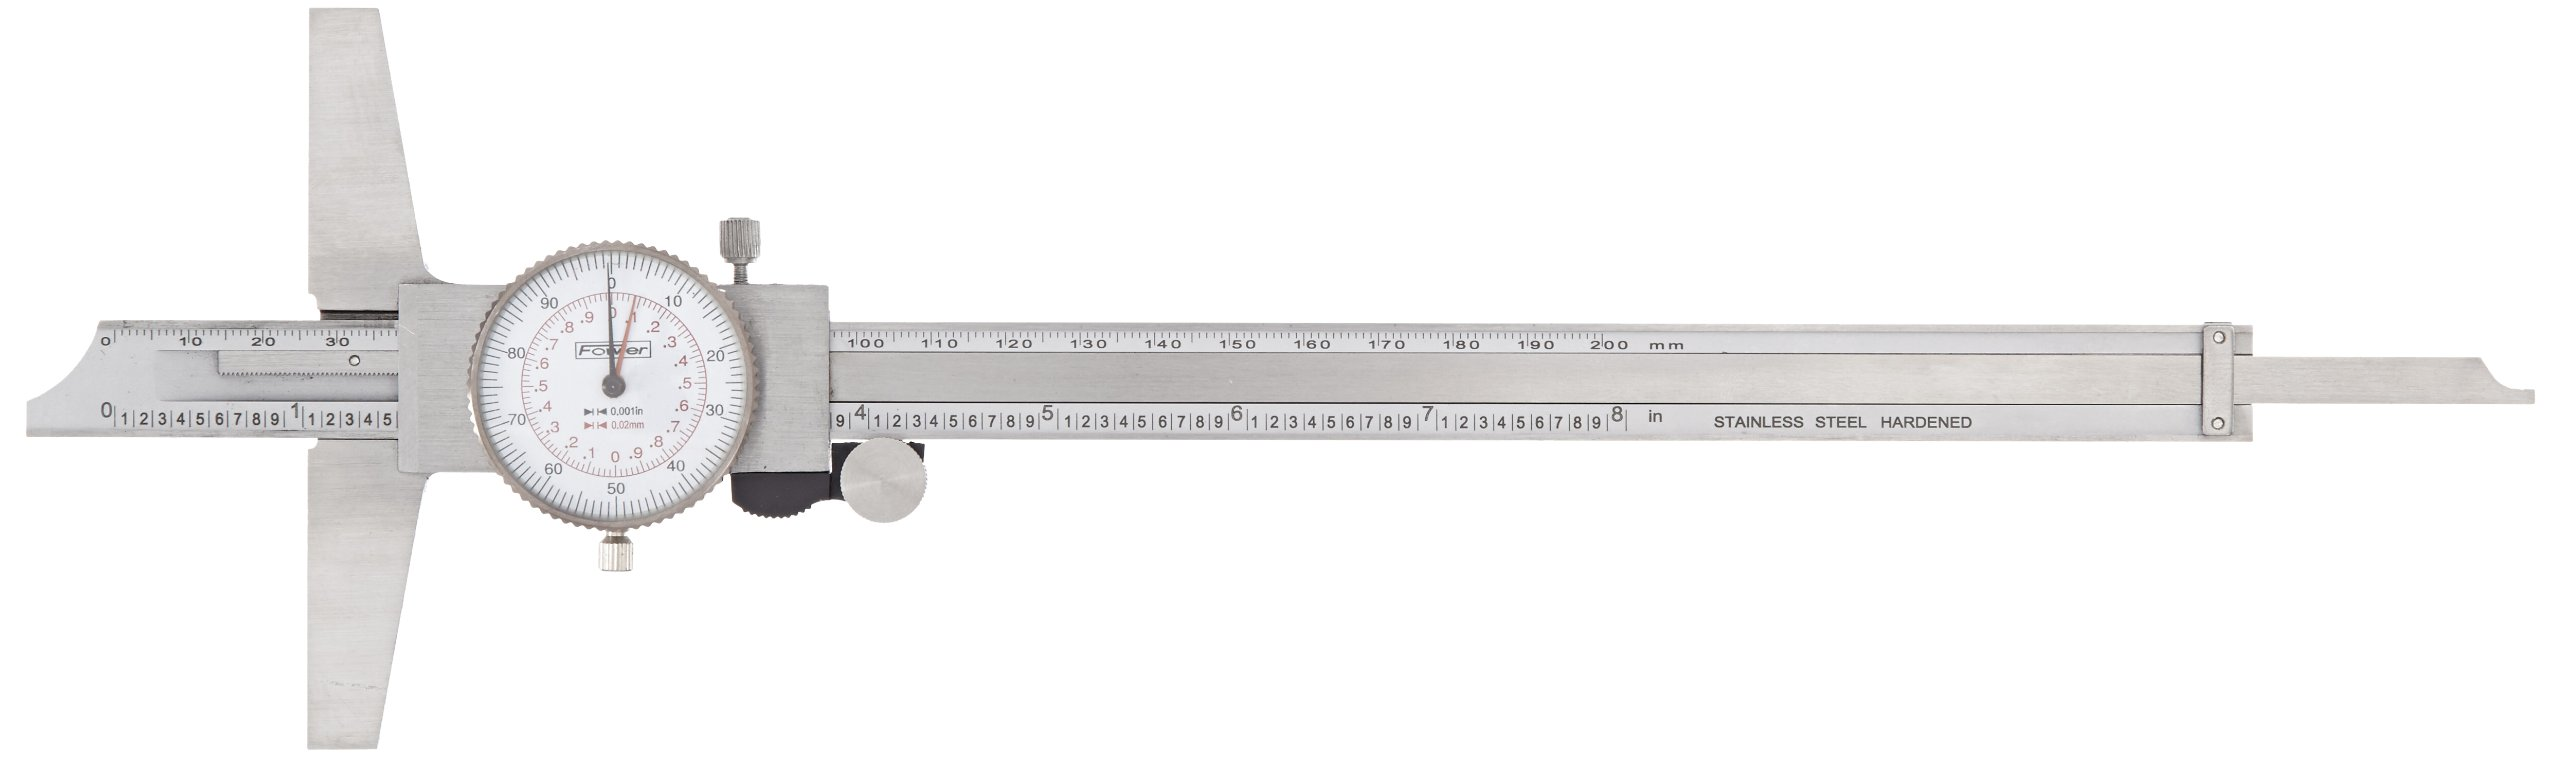 Fowler 52-130-008 Stainless Steel Inch/Metric Dial Depth Gauge, 8''/200mm Measuring Range, 0.001''/0.02mm Resolution